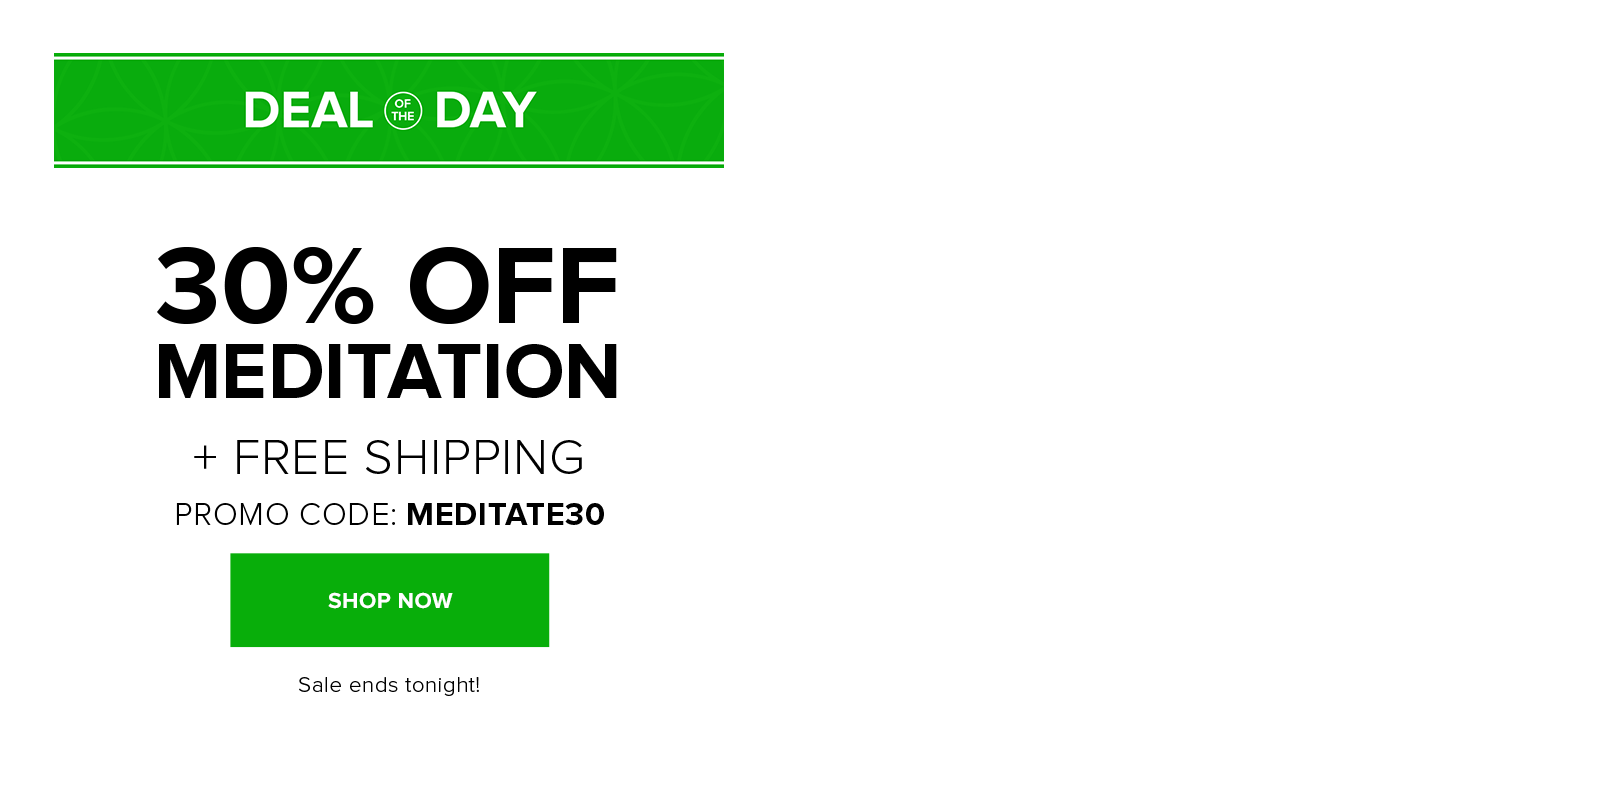 30% off meditation with code MEDITATE30